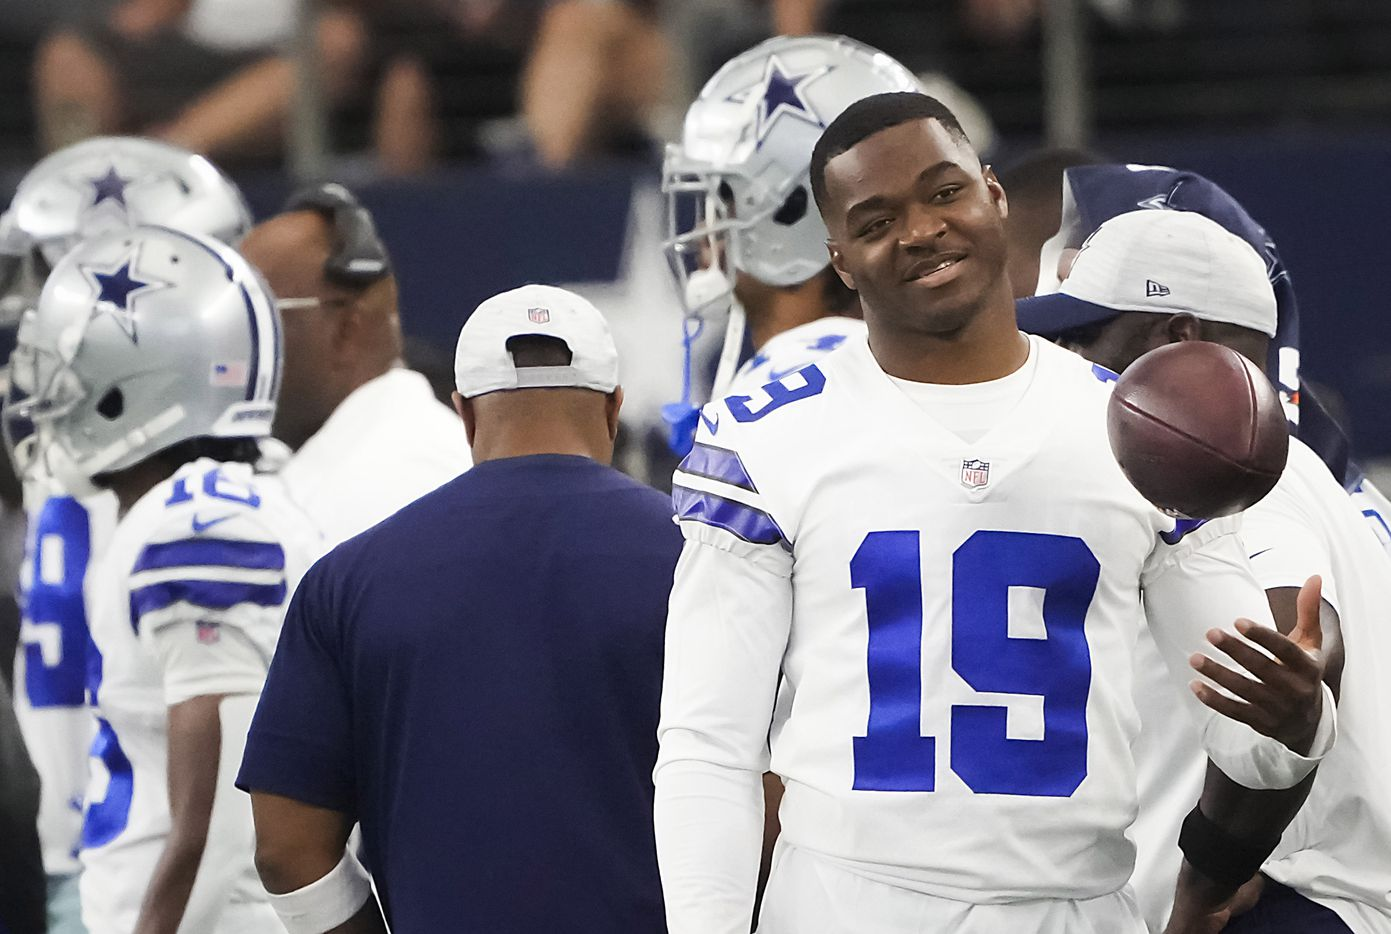 Dallas Cowboys wide receiver Amari Cooper tosses a ball on the sidelines during the first half of a preseason NFL football game against the Jacksonville Jaguars at AT&T Stadium on Sunday, Aug. 29, 2021, in Arlington. (Smiley N. Pool/The Dallas Morning News)